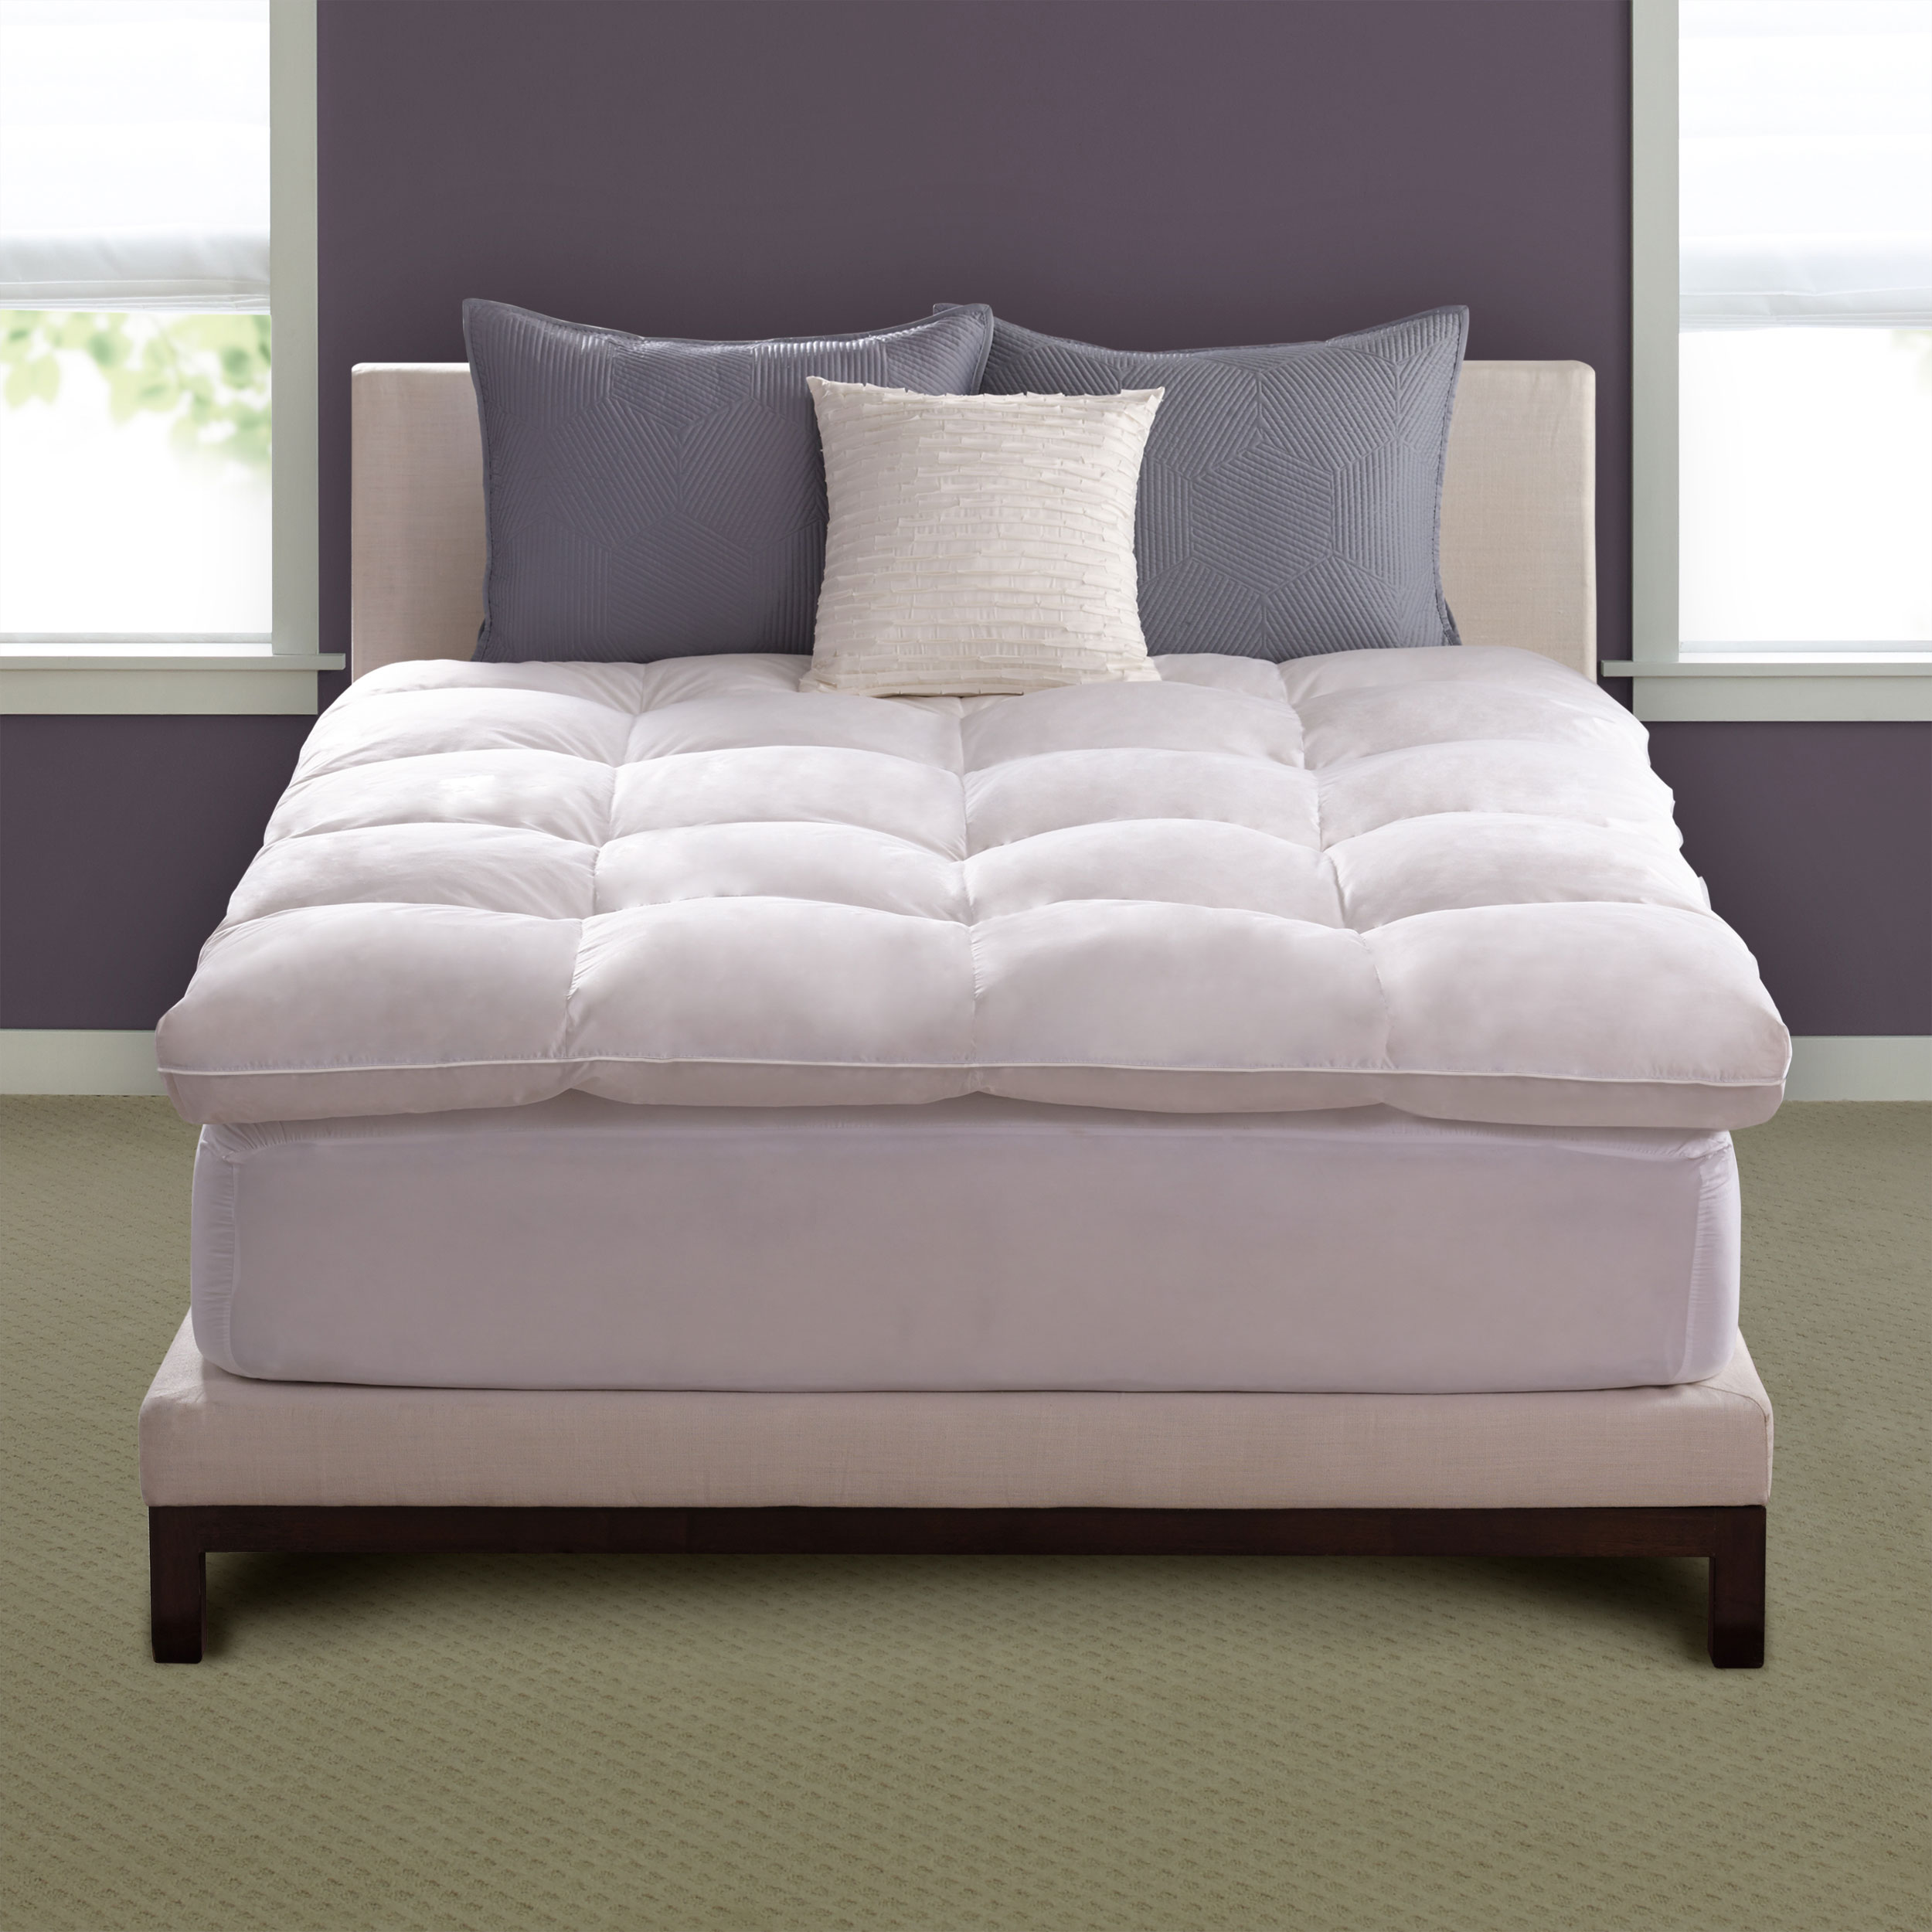 Shop Hotel Collection White Feather Bed